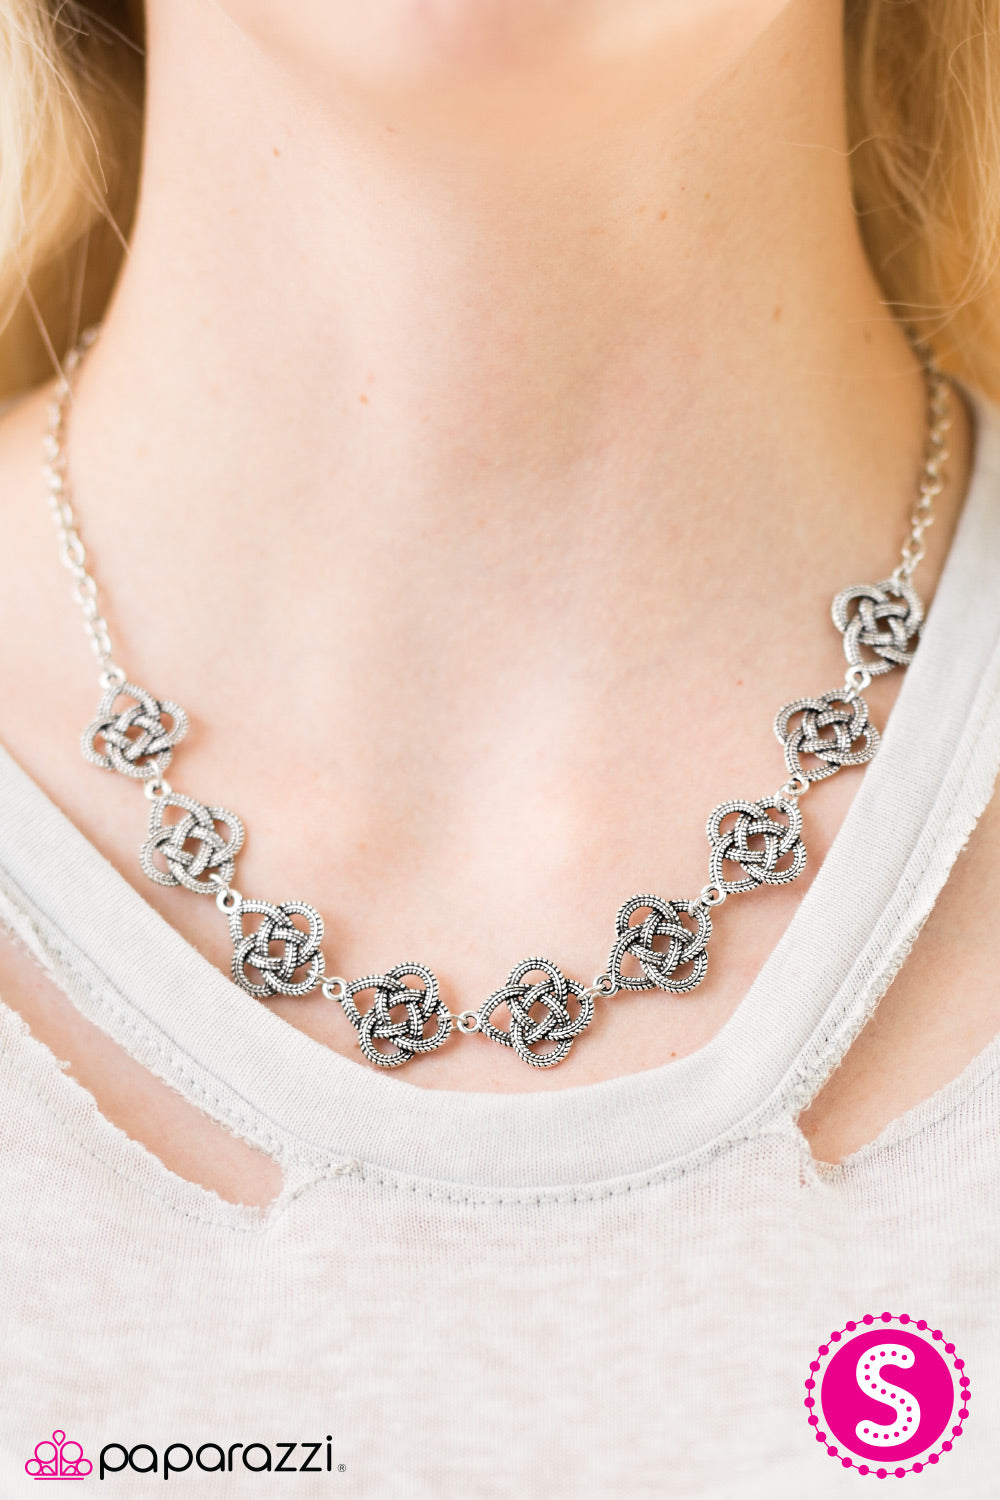 Cunning Cleopatra - Silver - Paparazzi necklace